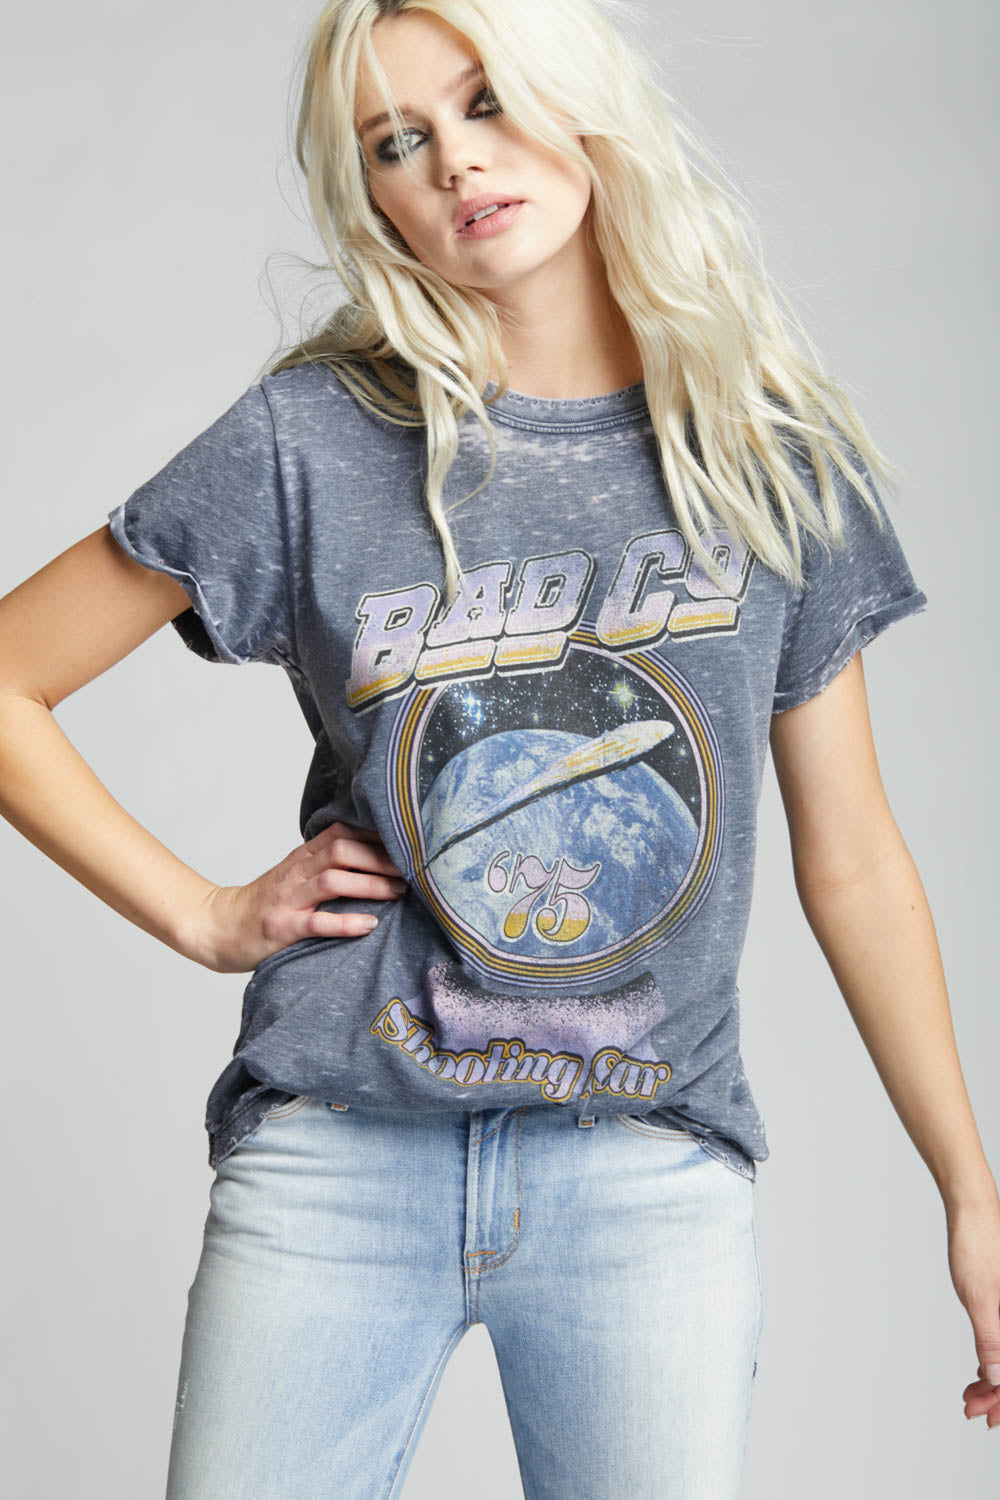 Bad Company 1975 Shooting Star Tee